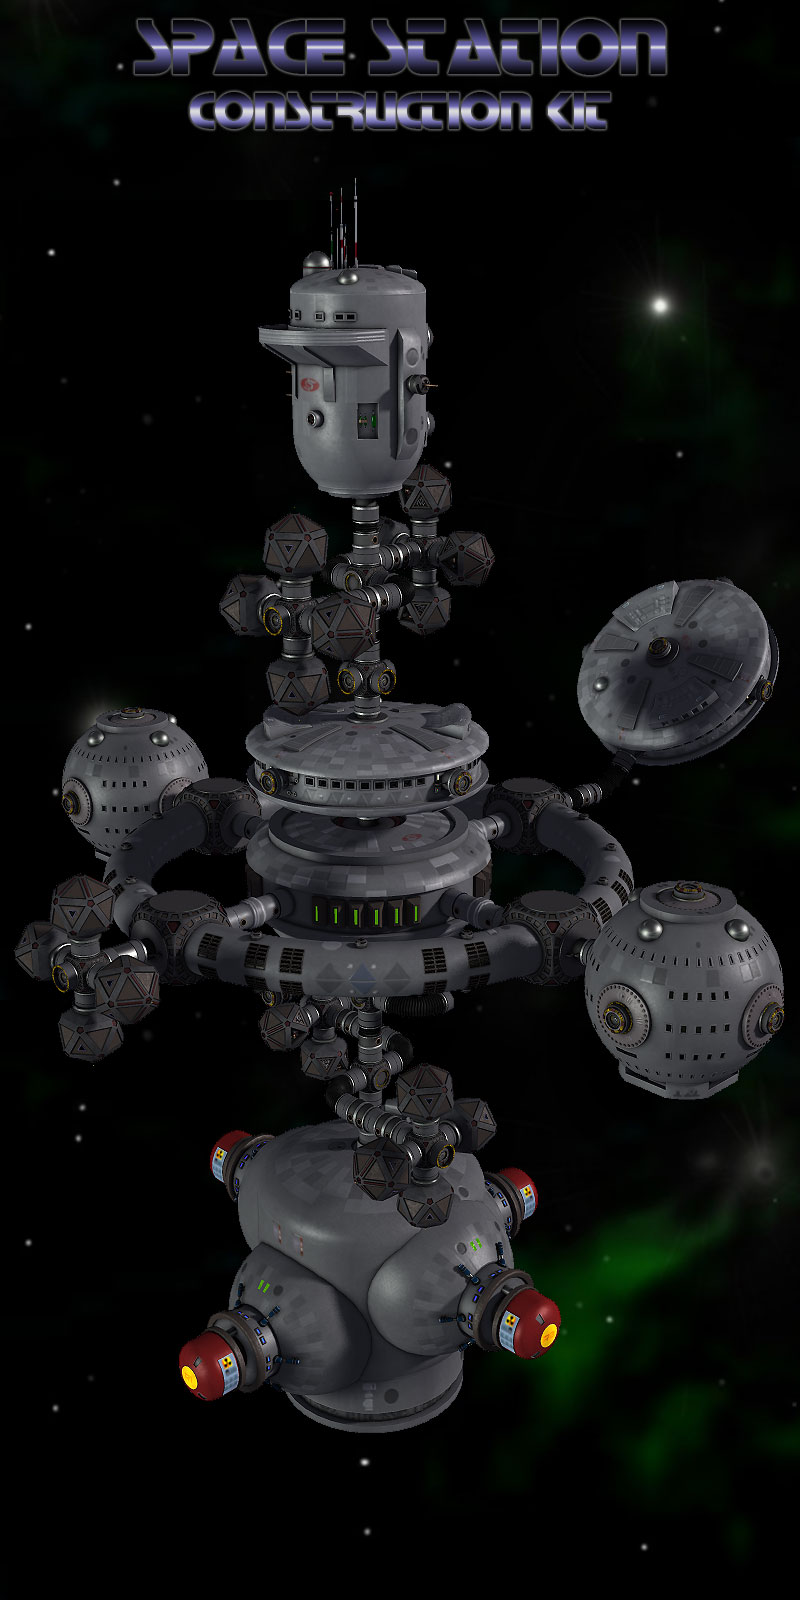 Space Station Construction Kit